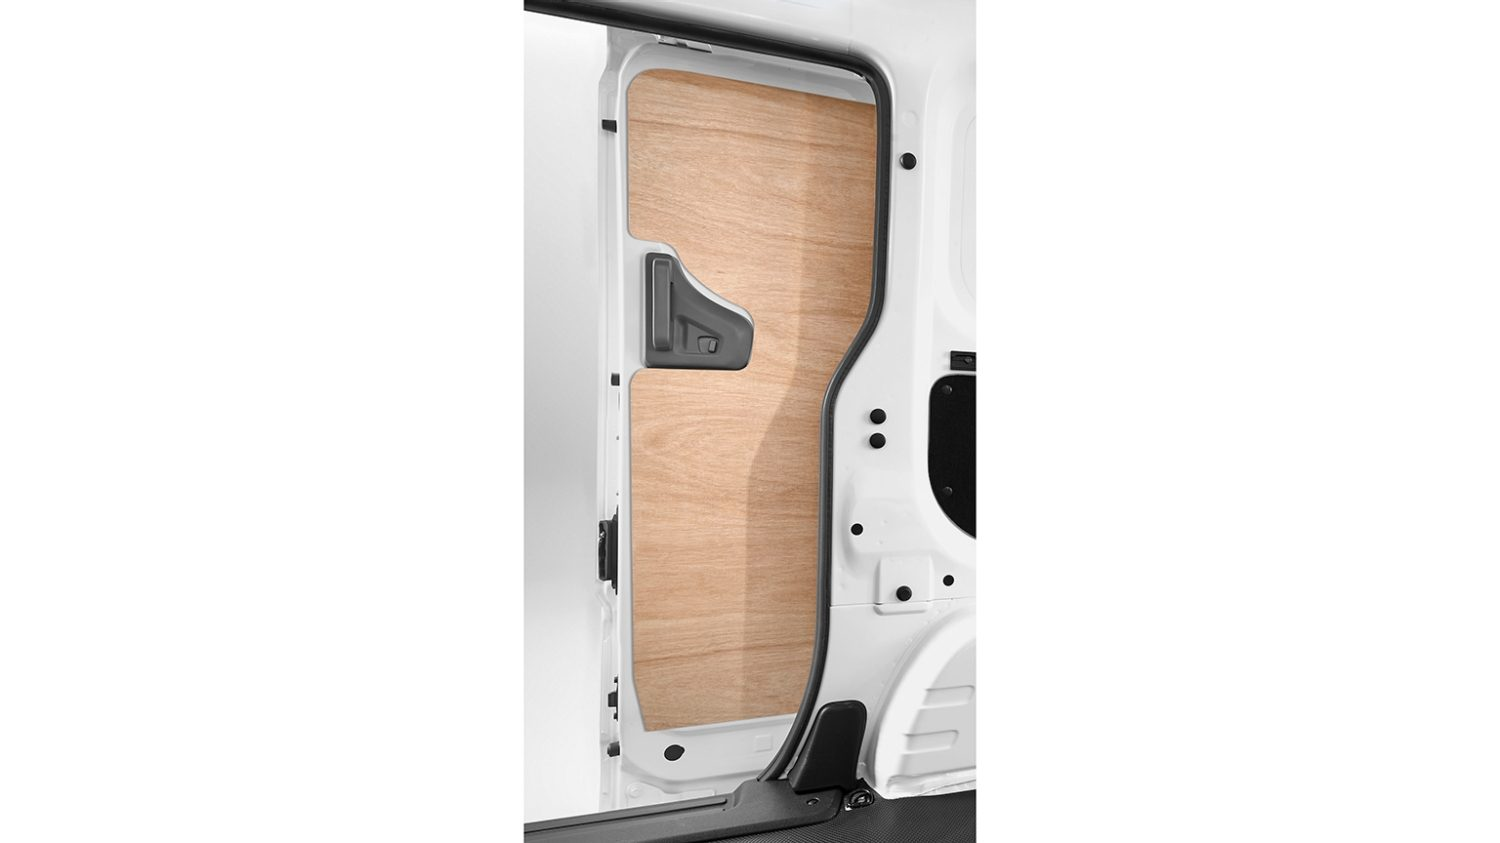 Nissan NV200 - Interior - Sliding door wood protection panel